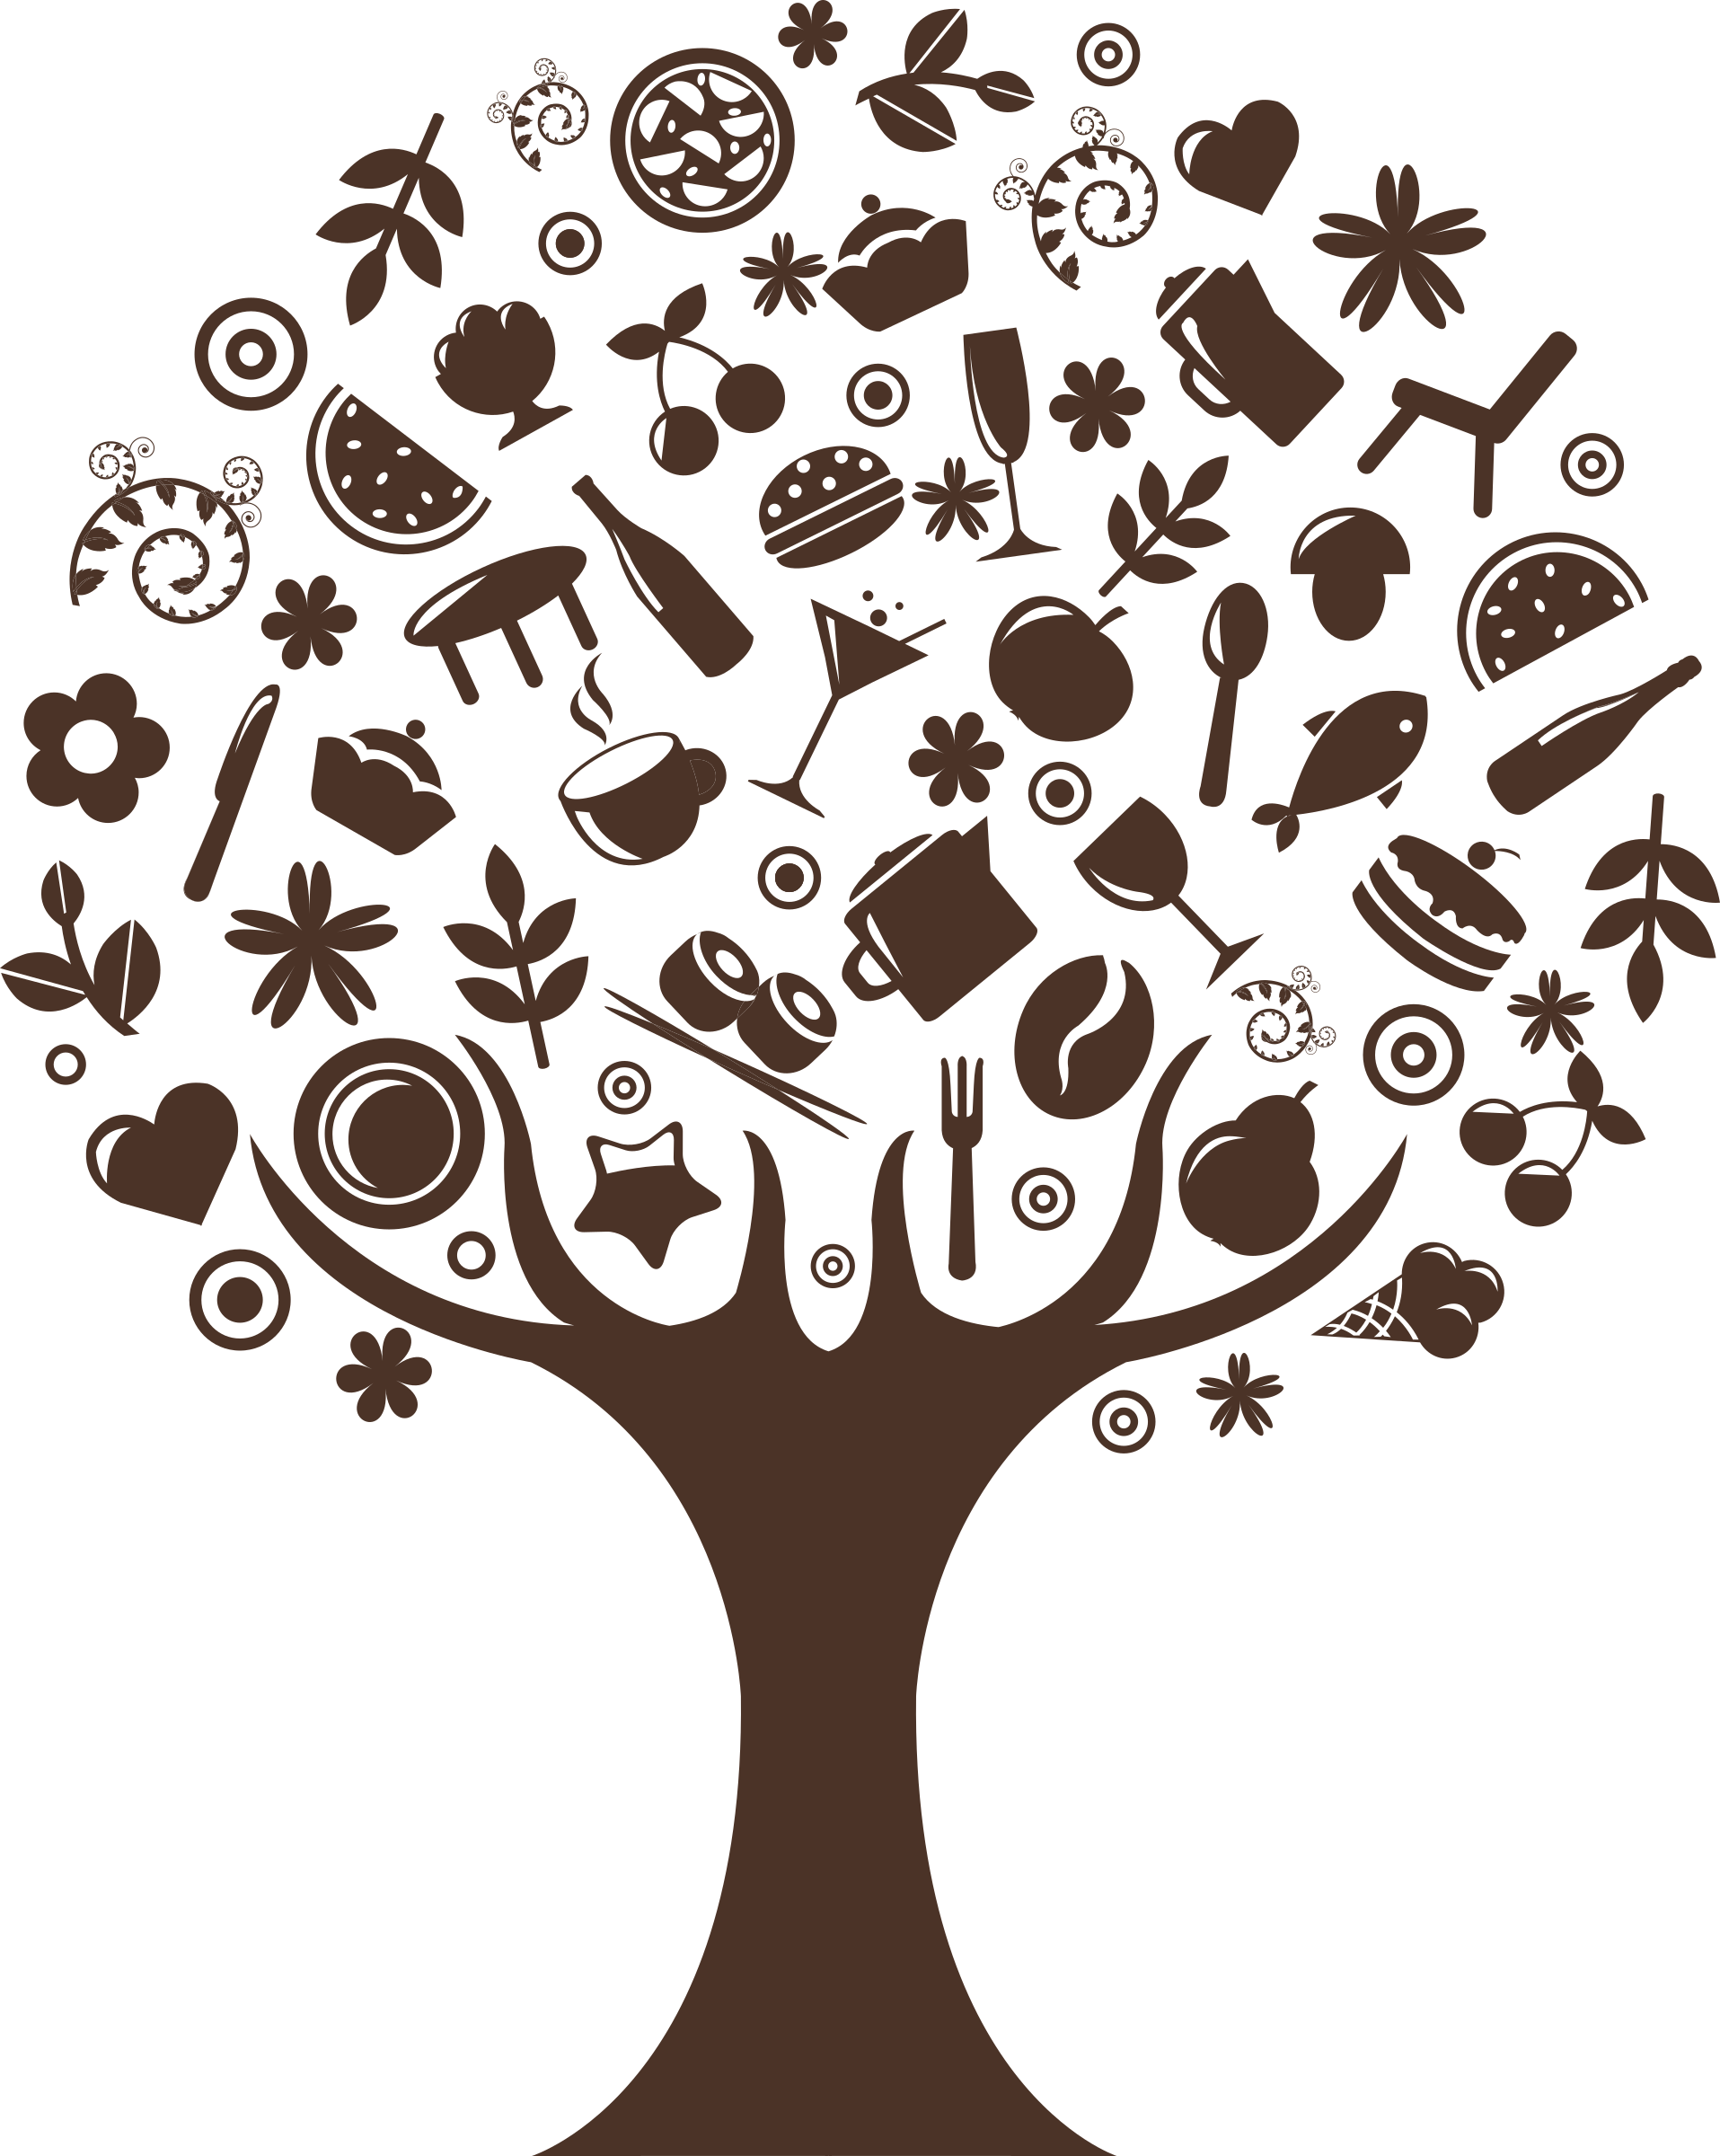 Cliparts making the web. Food clipart tree